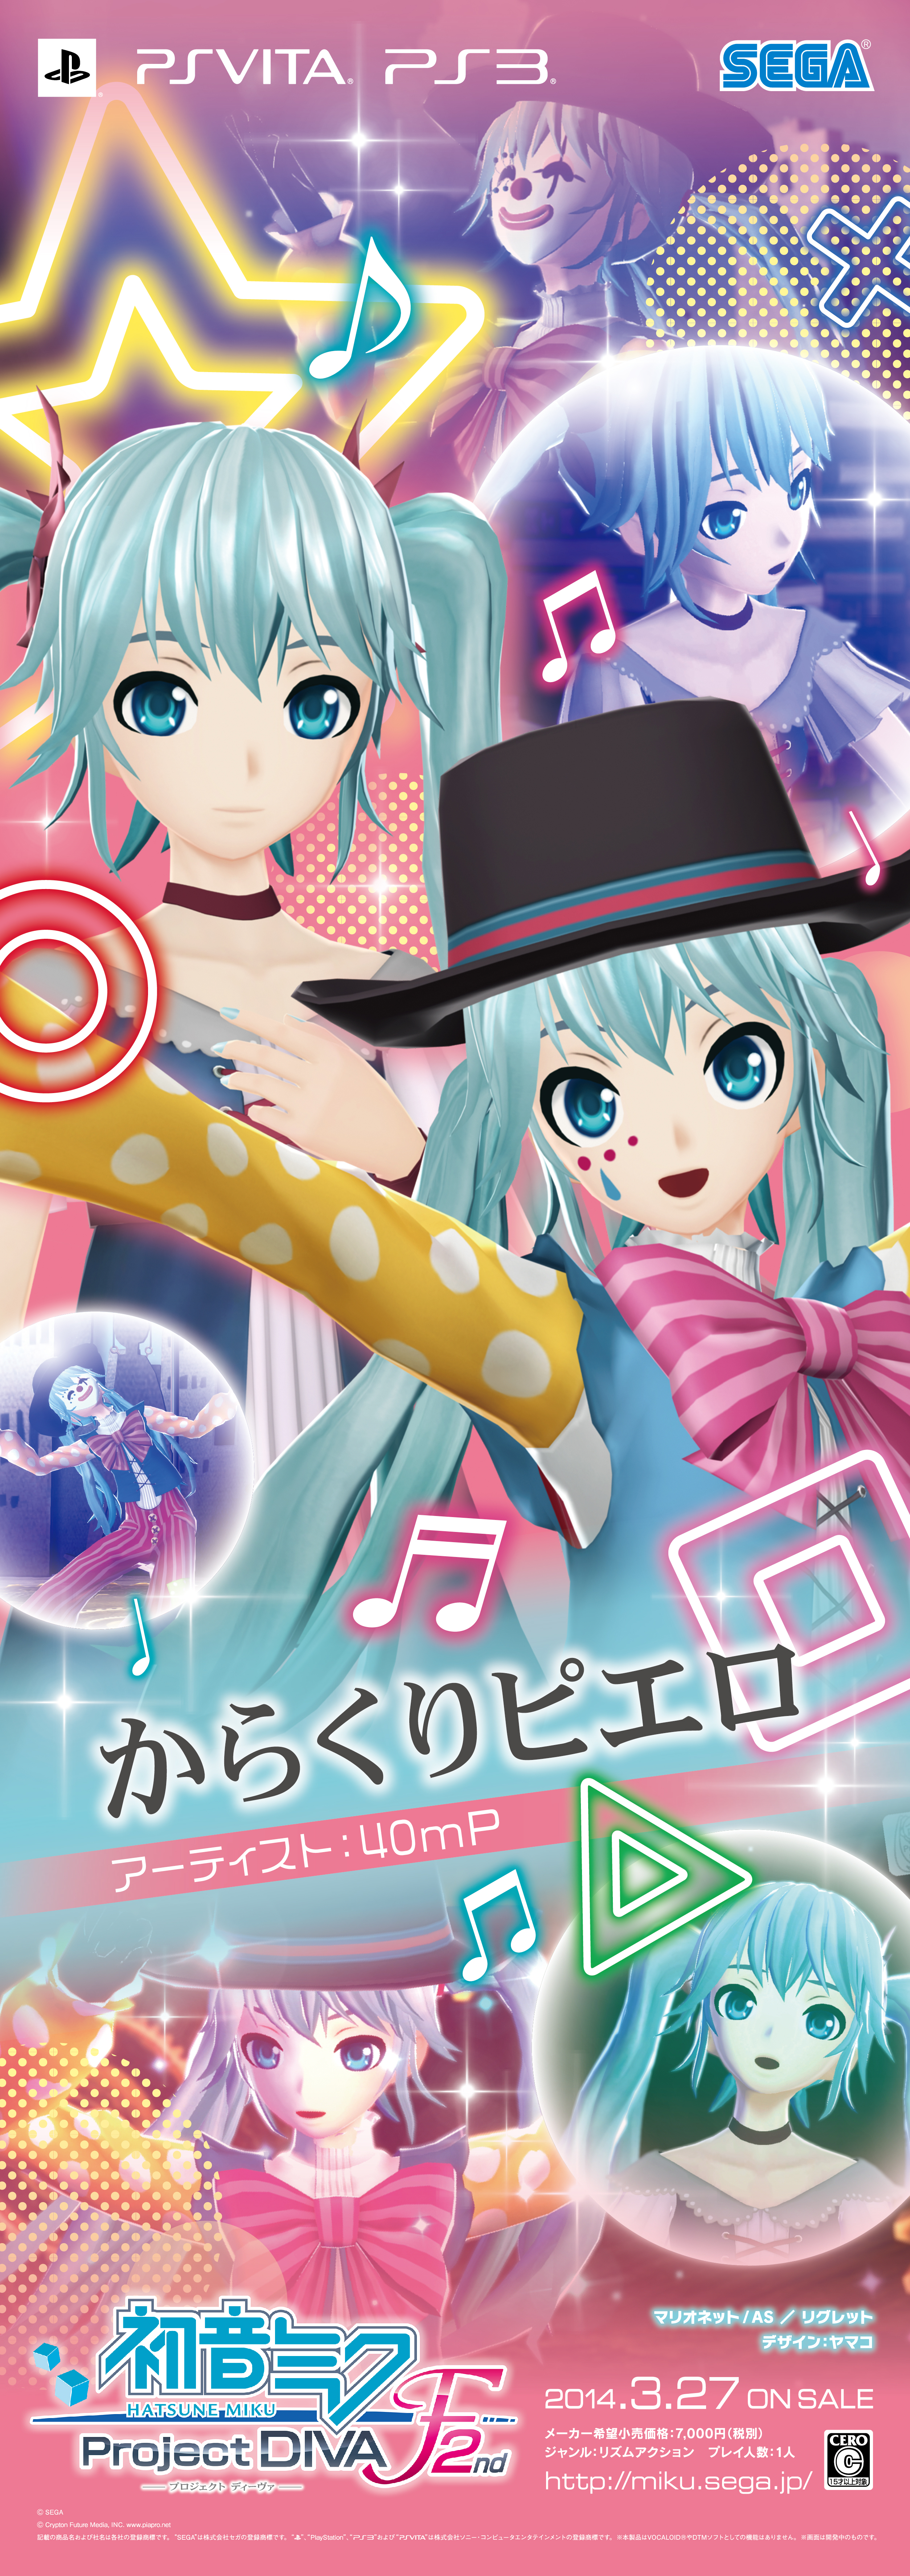 ... ! Give them a download and show off your love for Project DIVA